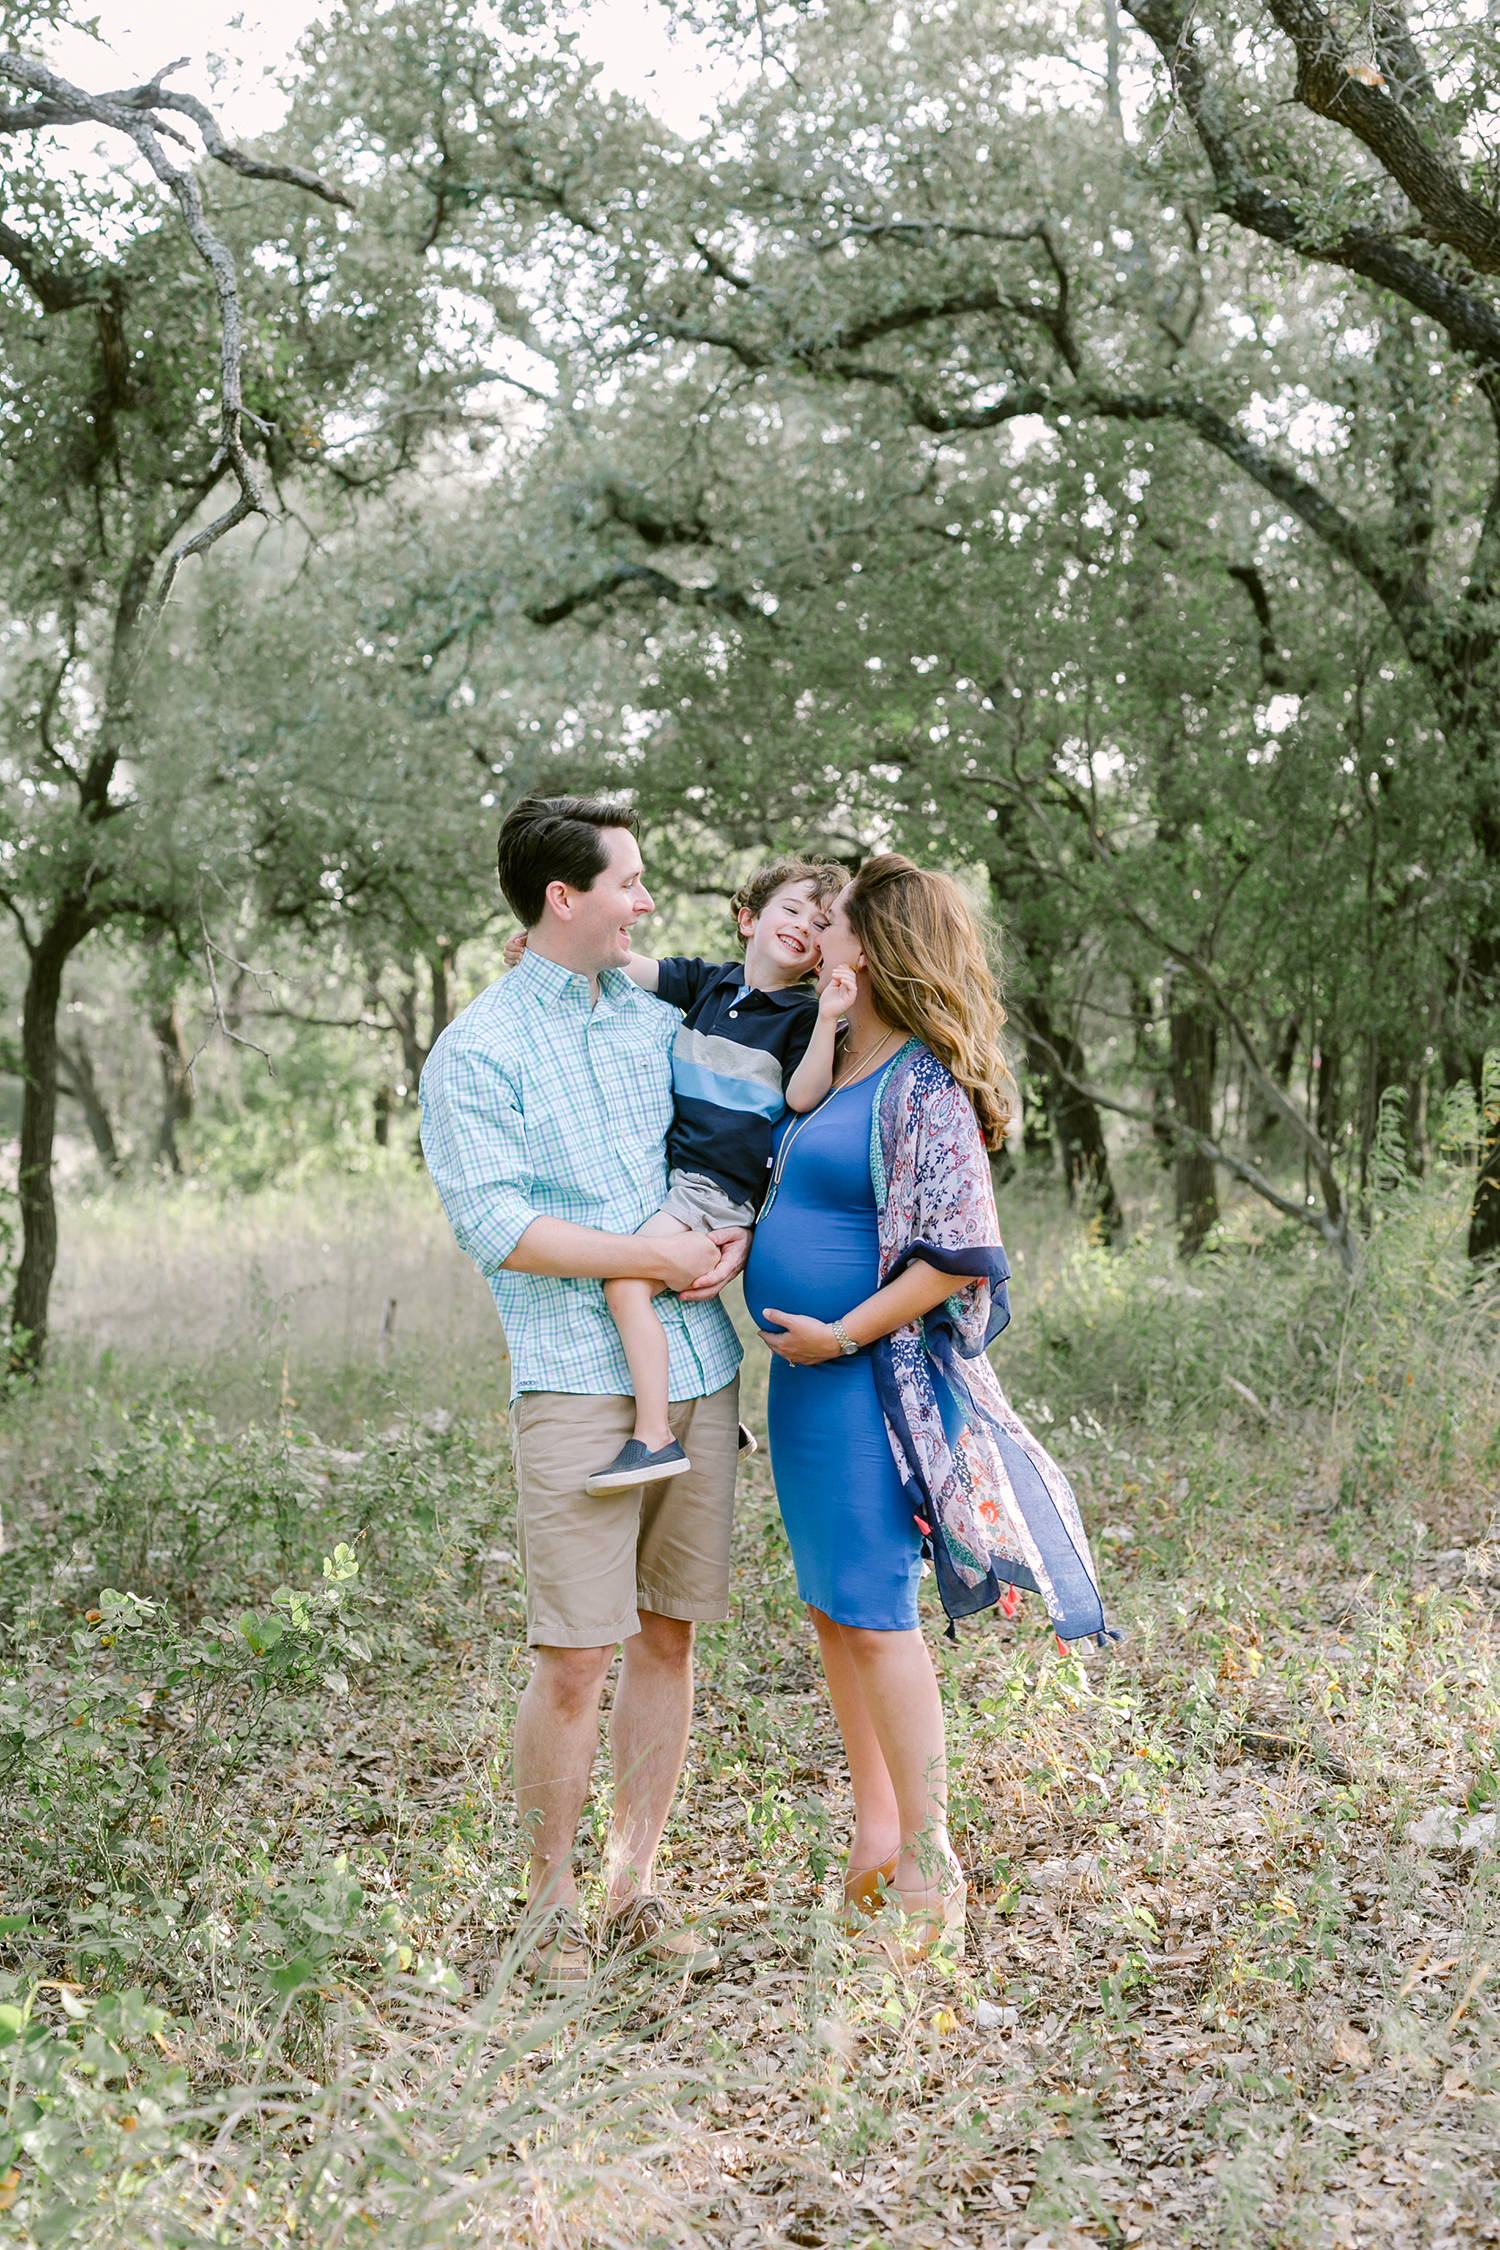 austin-tx-maternity-bump-photographer-06.jpg